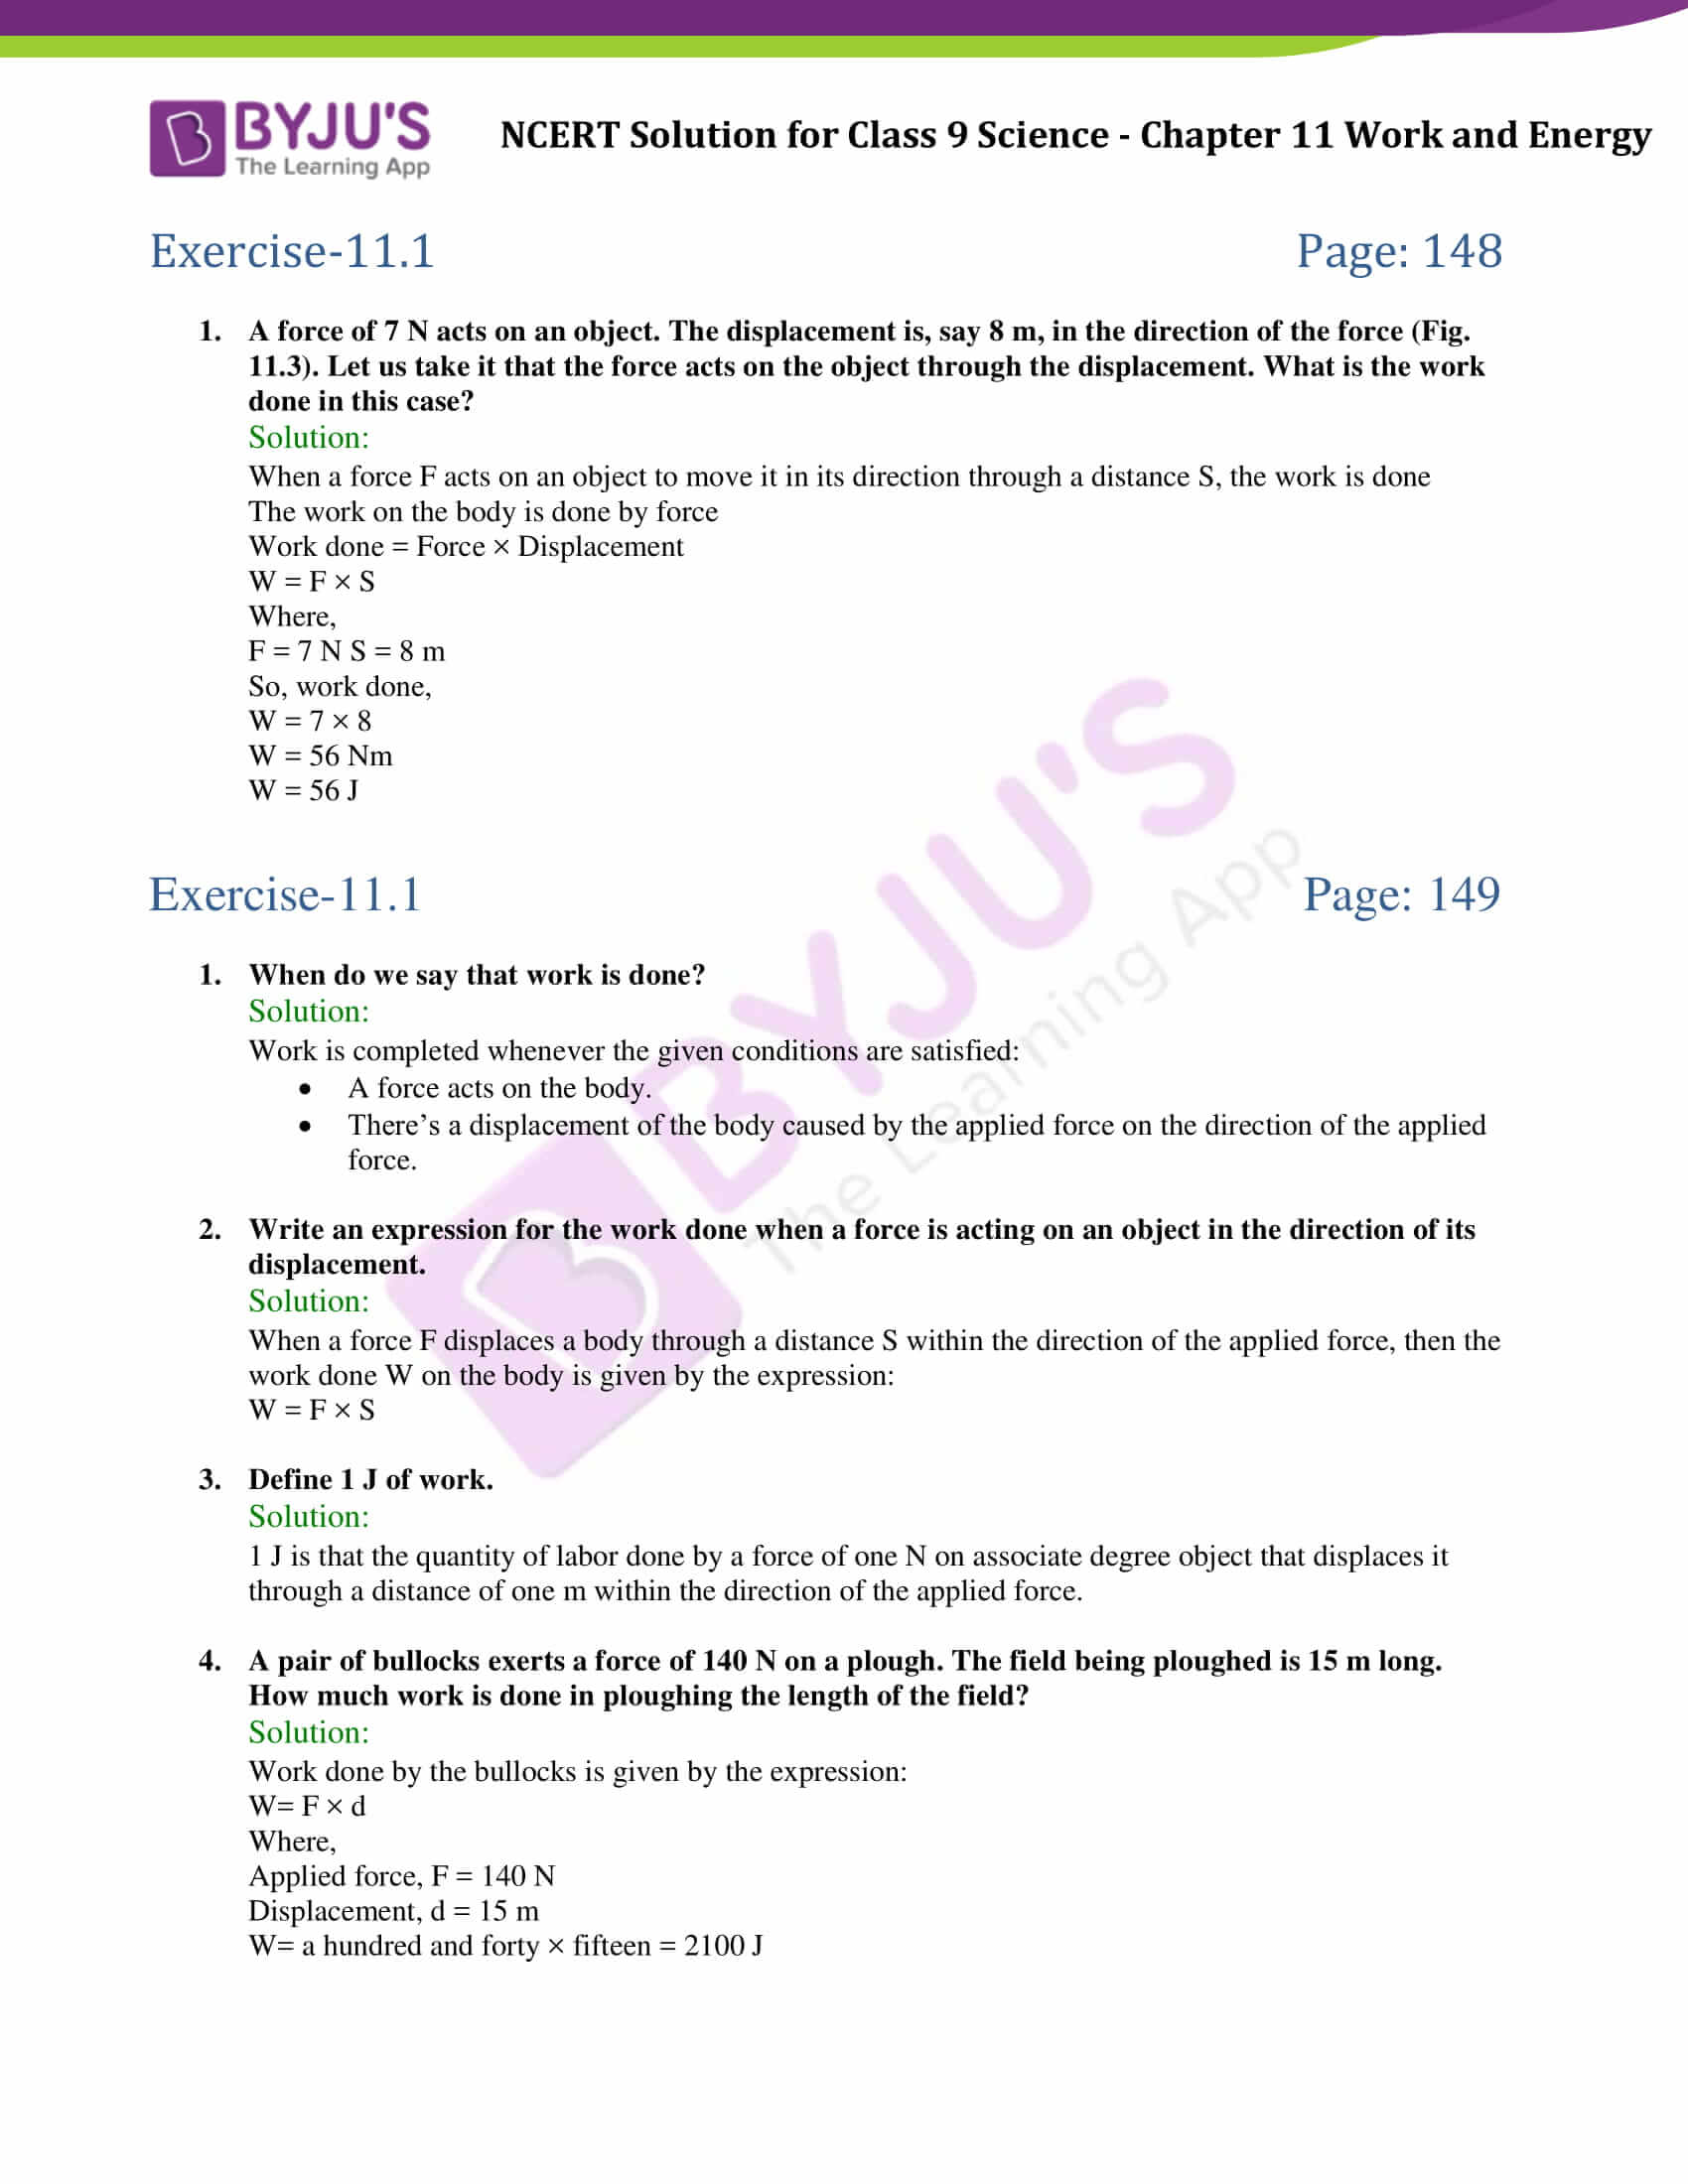 NCERT Solutions Class 9 Science Chapter 11 Work And Energy - Updated ...